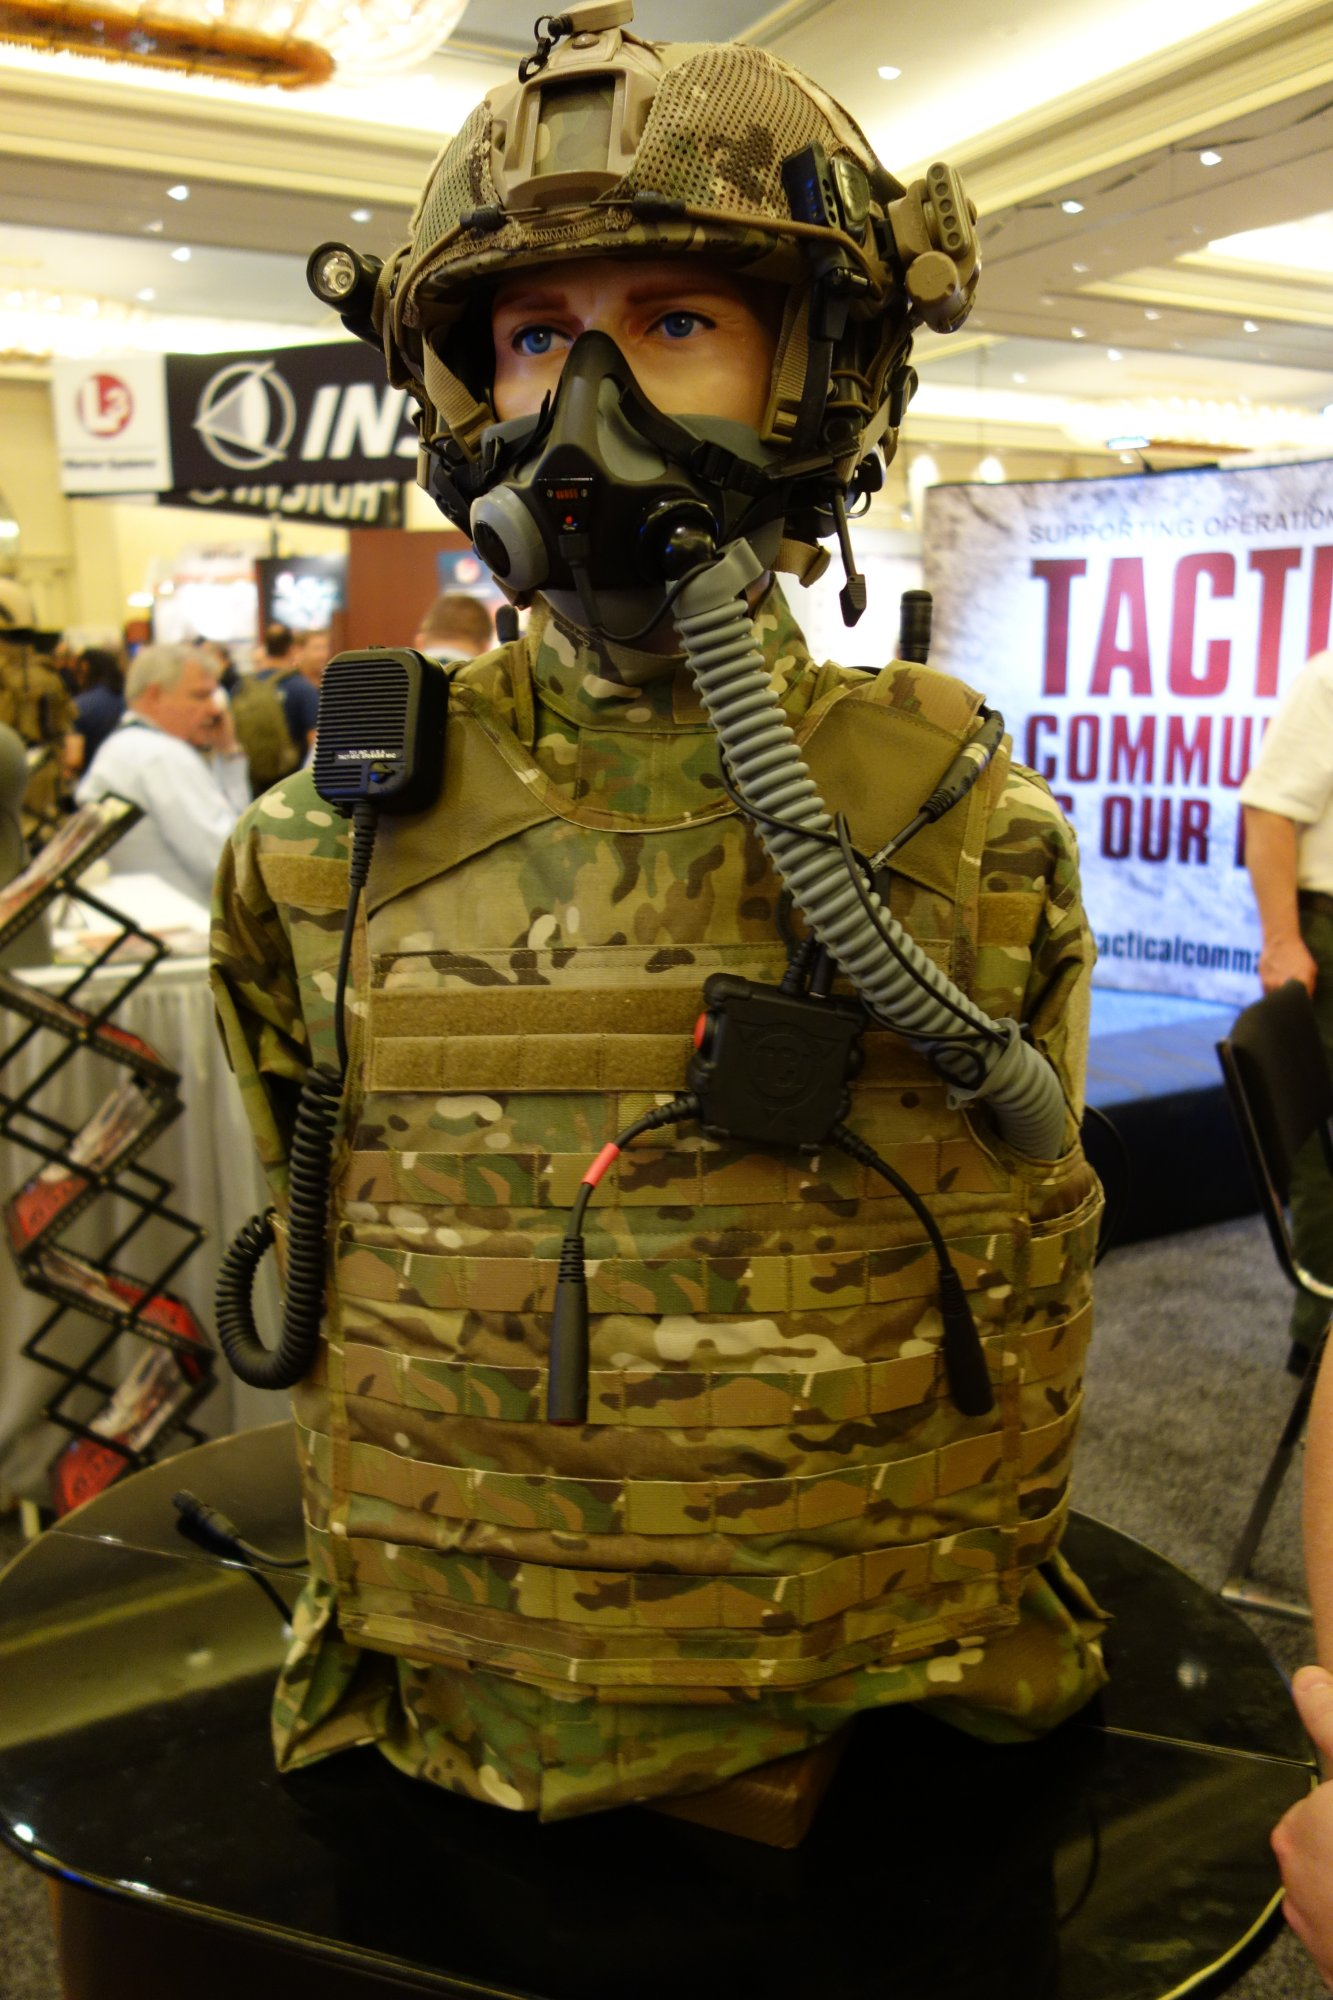 Tactical Command Industries TCI Liberator III ITJCS TACP JTAC Secure Dual Comm Tactical Headset with Integrated Digital Hearing Protection Tactical Communications Tactical Comms SHOT Show 2013 David Crane DefenseReview.com DR 1 Tactical Command Industries TCI Liberator III ITJCS TACP/JTAC Secure Dual Comm Tactical Headset with Integrated Digital Hearing Protection for Military Airborne and Ground Ops (Video!)